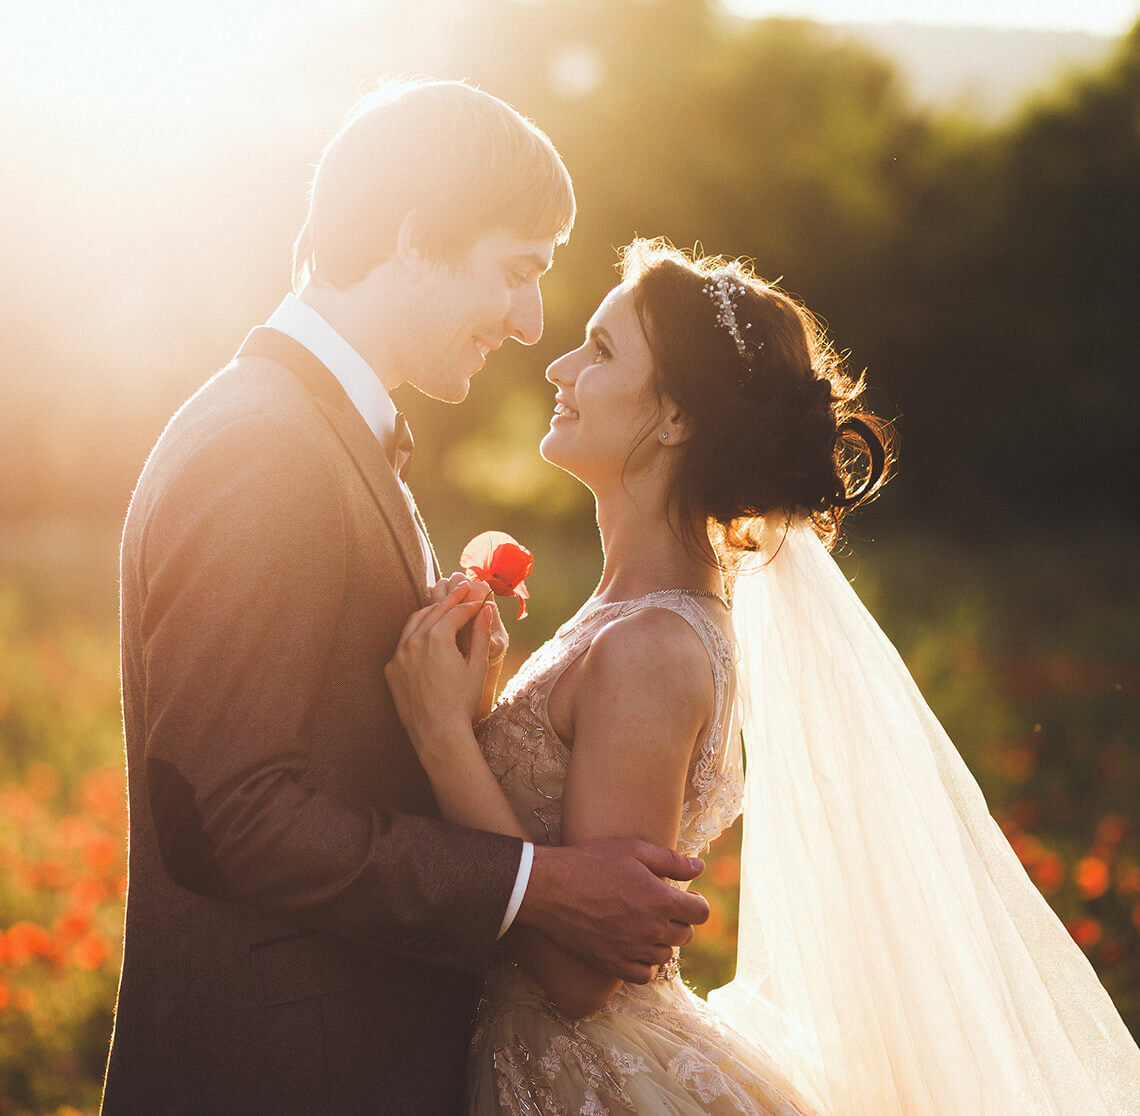 Bride and groom at their elopement in Waynesville, NC